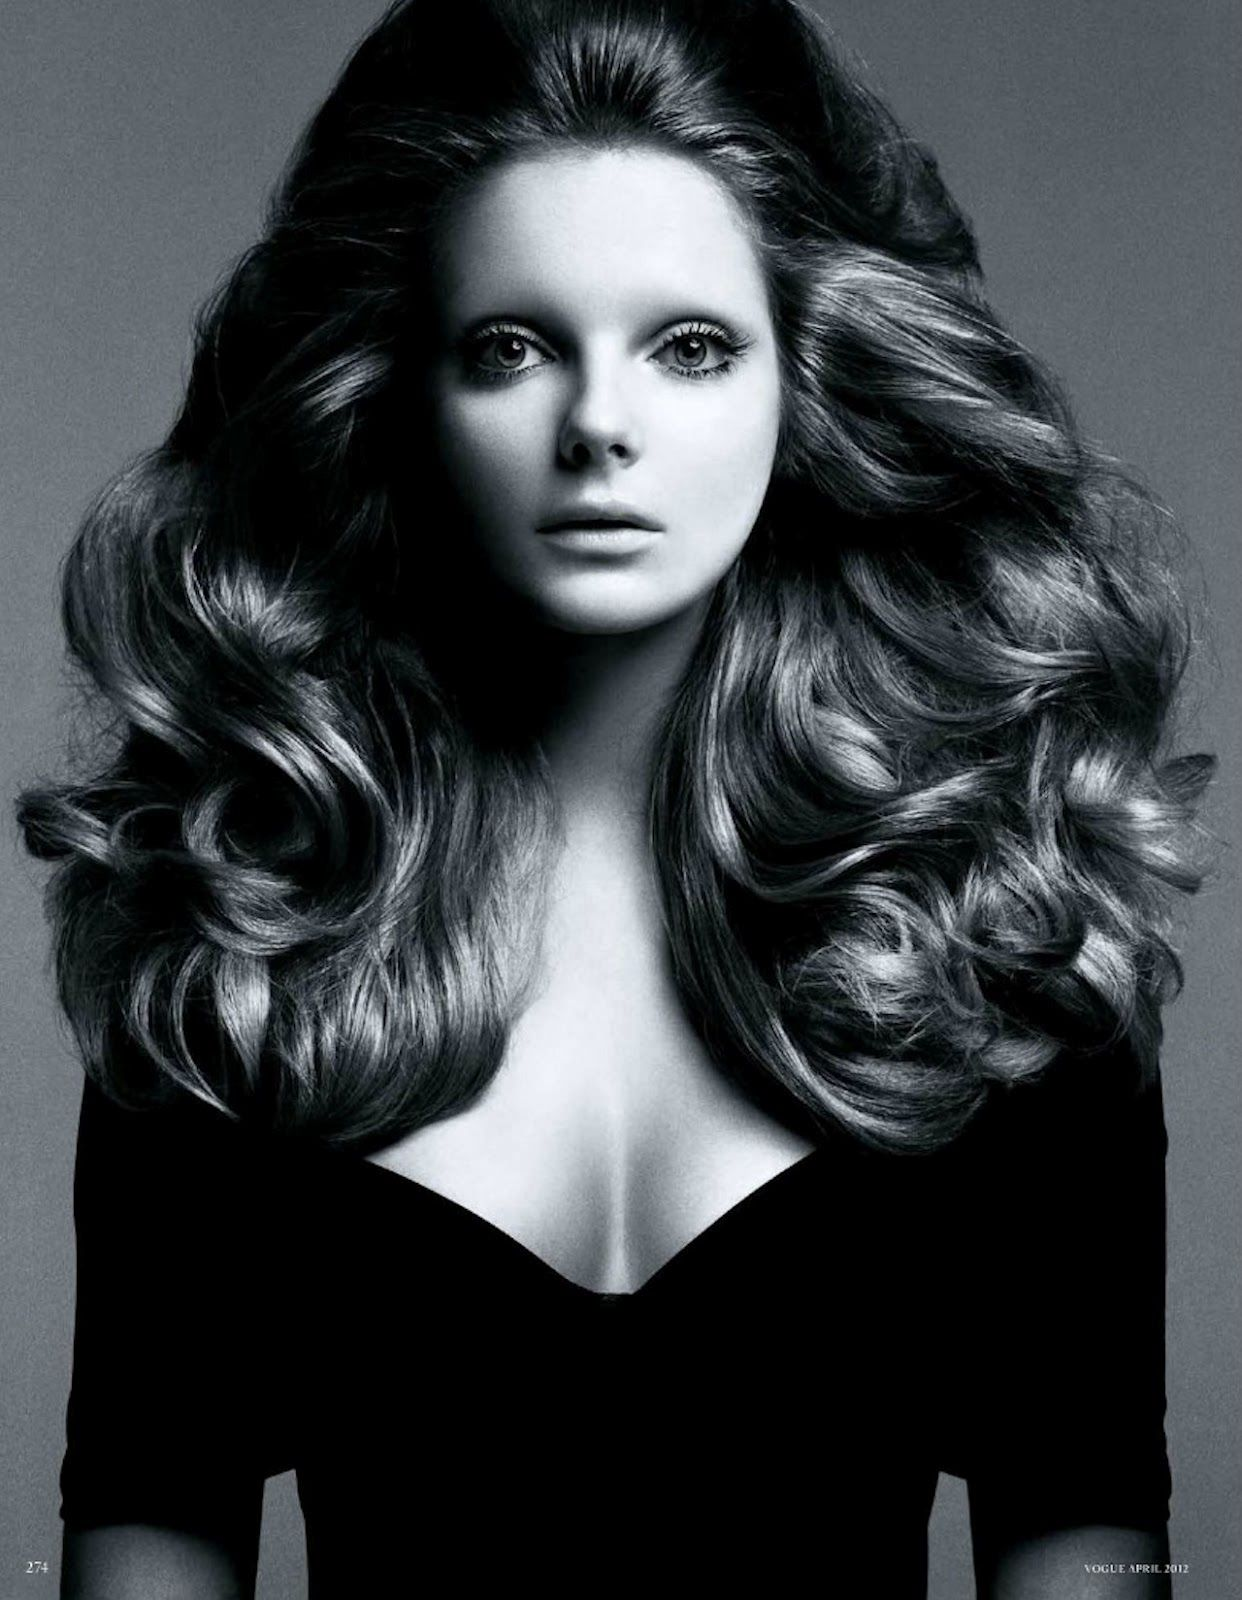 Pin by Denise Thorby on Frizura Pinterest Haar Visagie and Poses